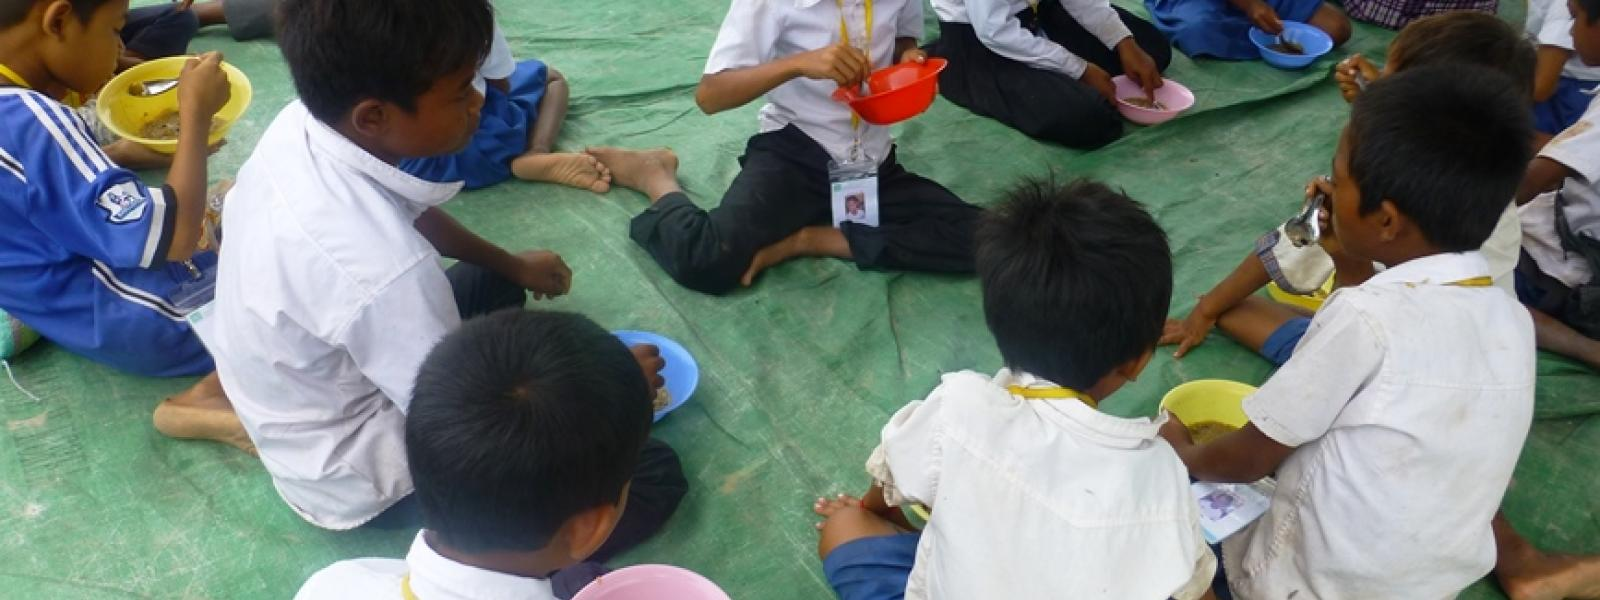 WE CONCERN CAMBODIAN RURAL CHILDREN'S HEALTH